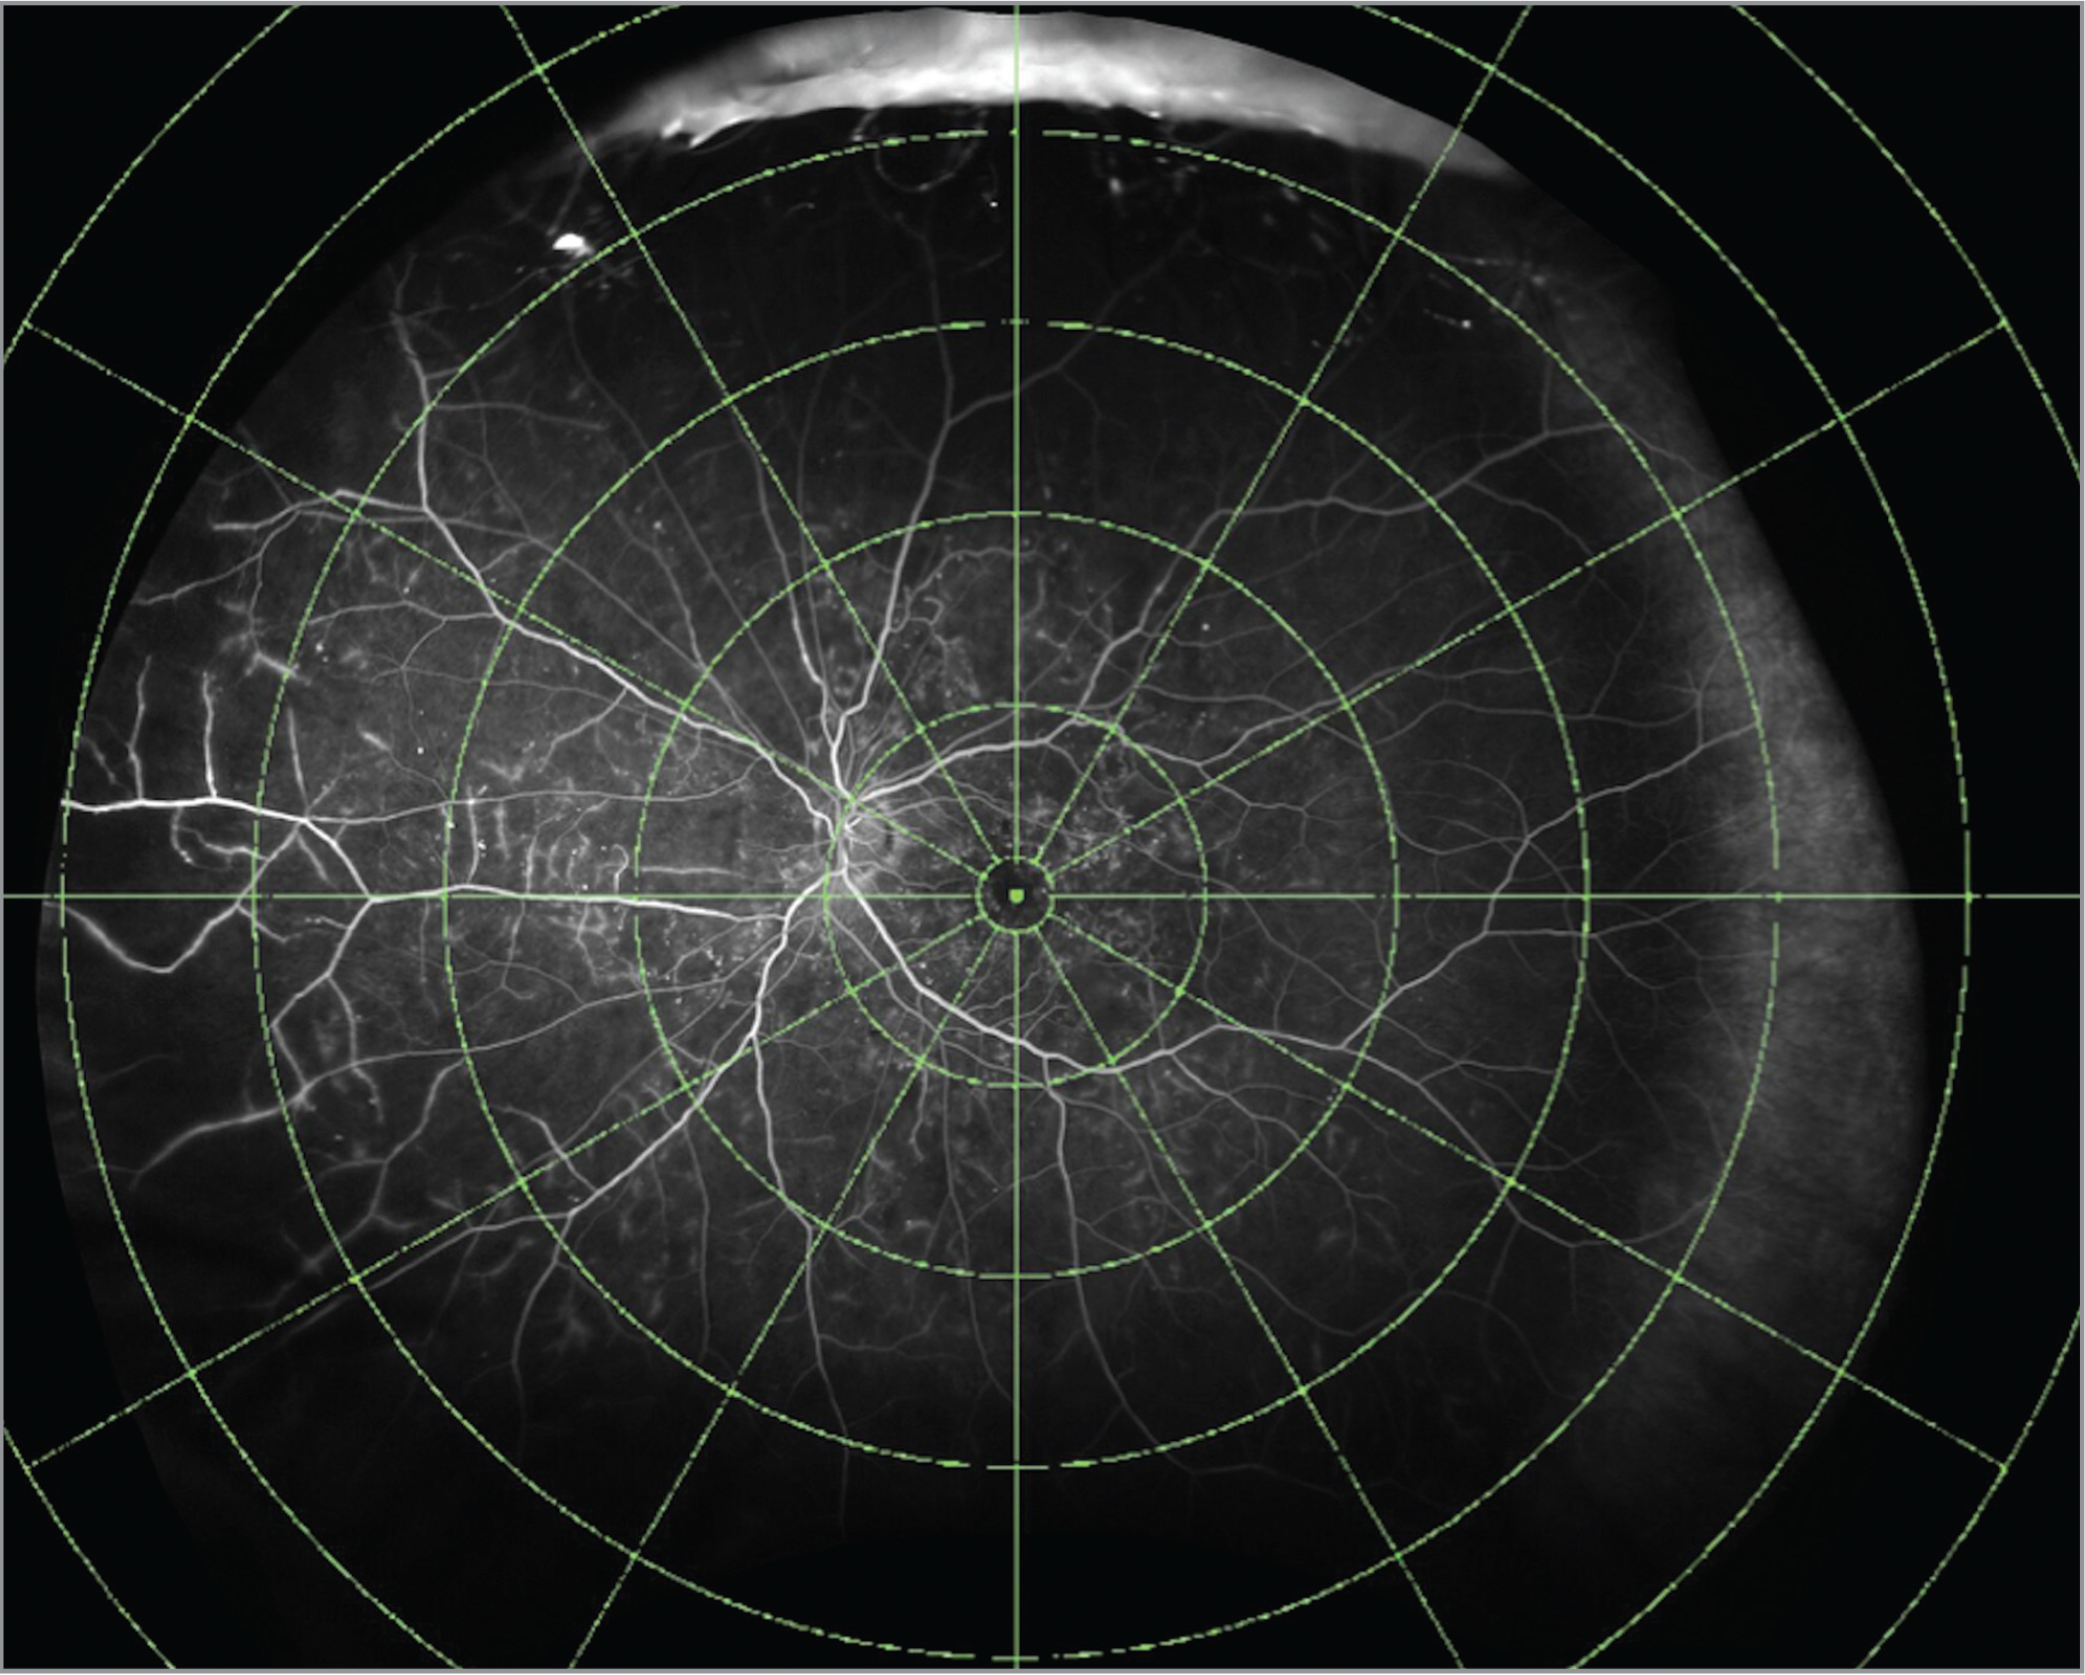 Ultra-widefield fluorescein angiography with concentric rings overlay.